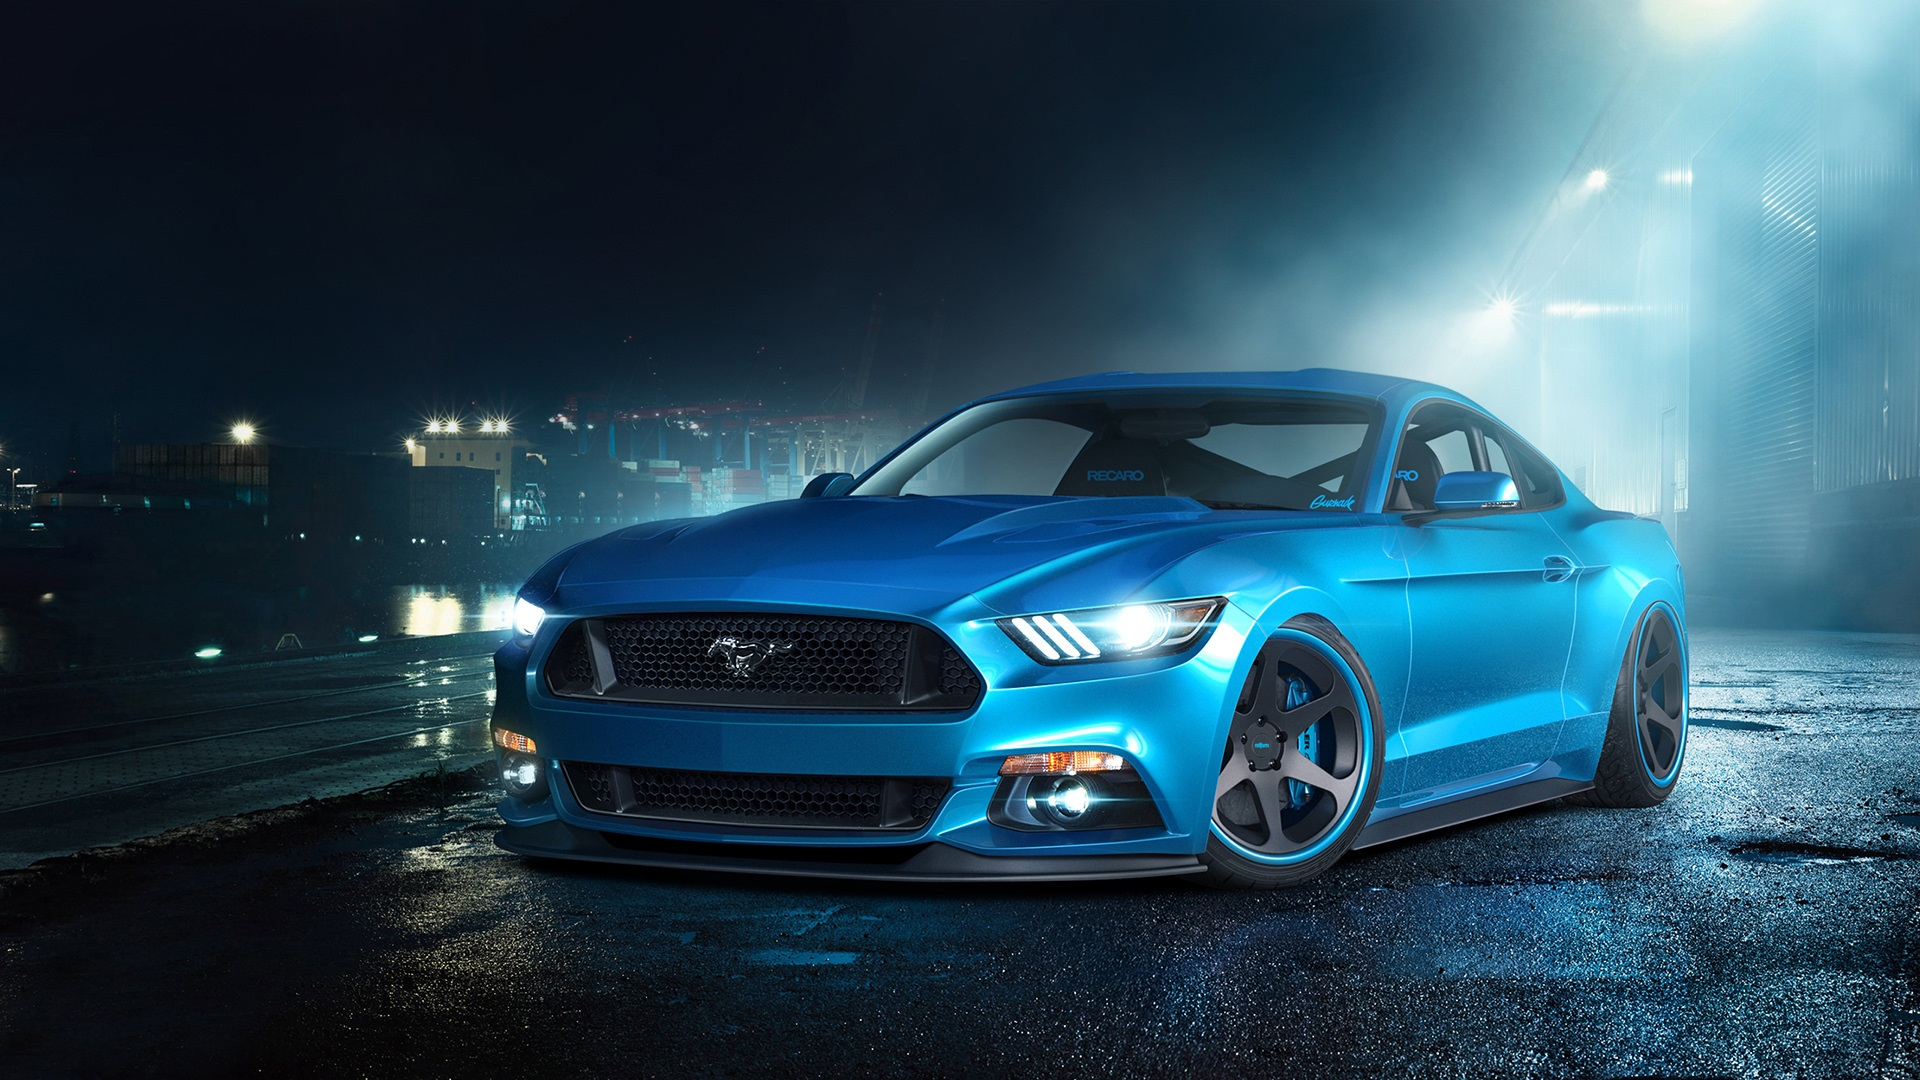 Ford-Mustang-GT-1920x1080-wallpaper-wp3605737